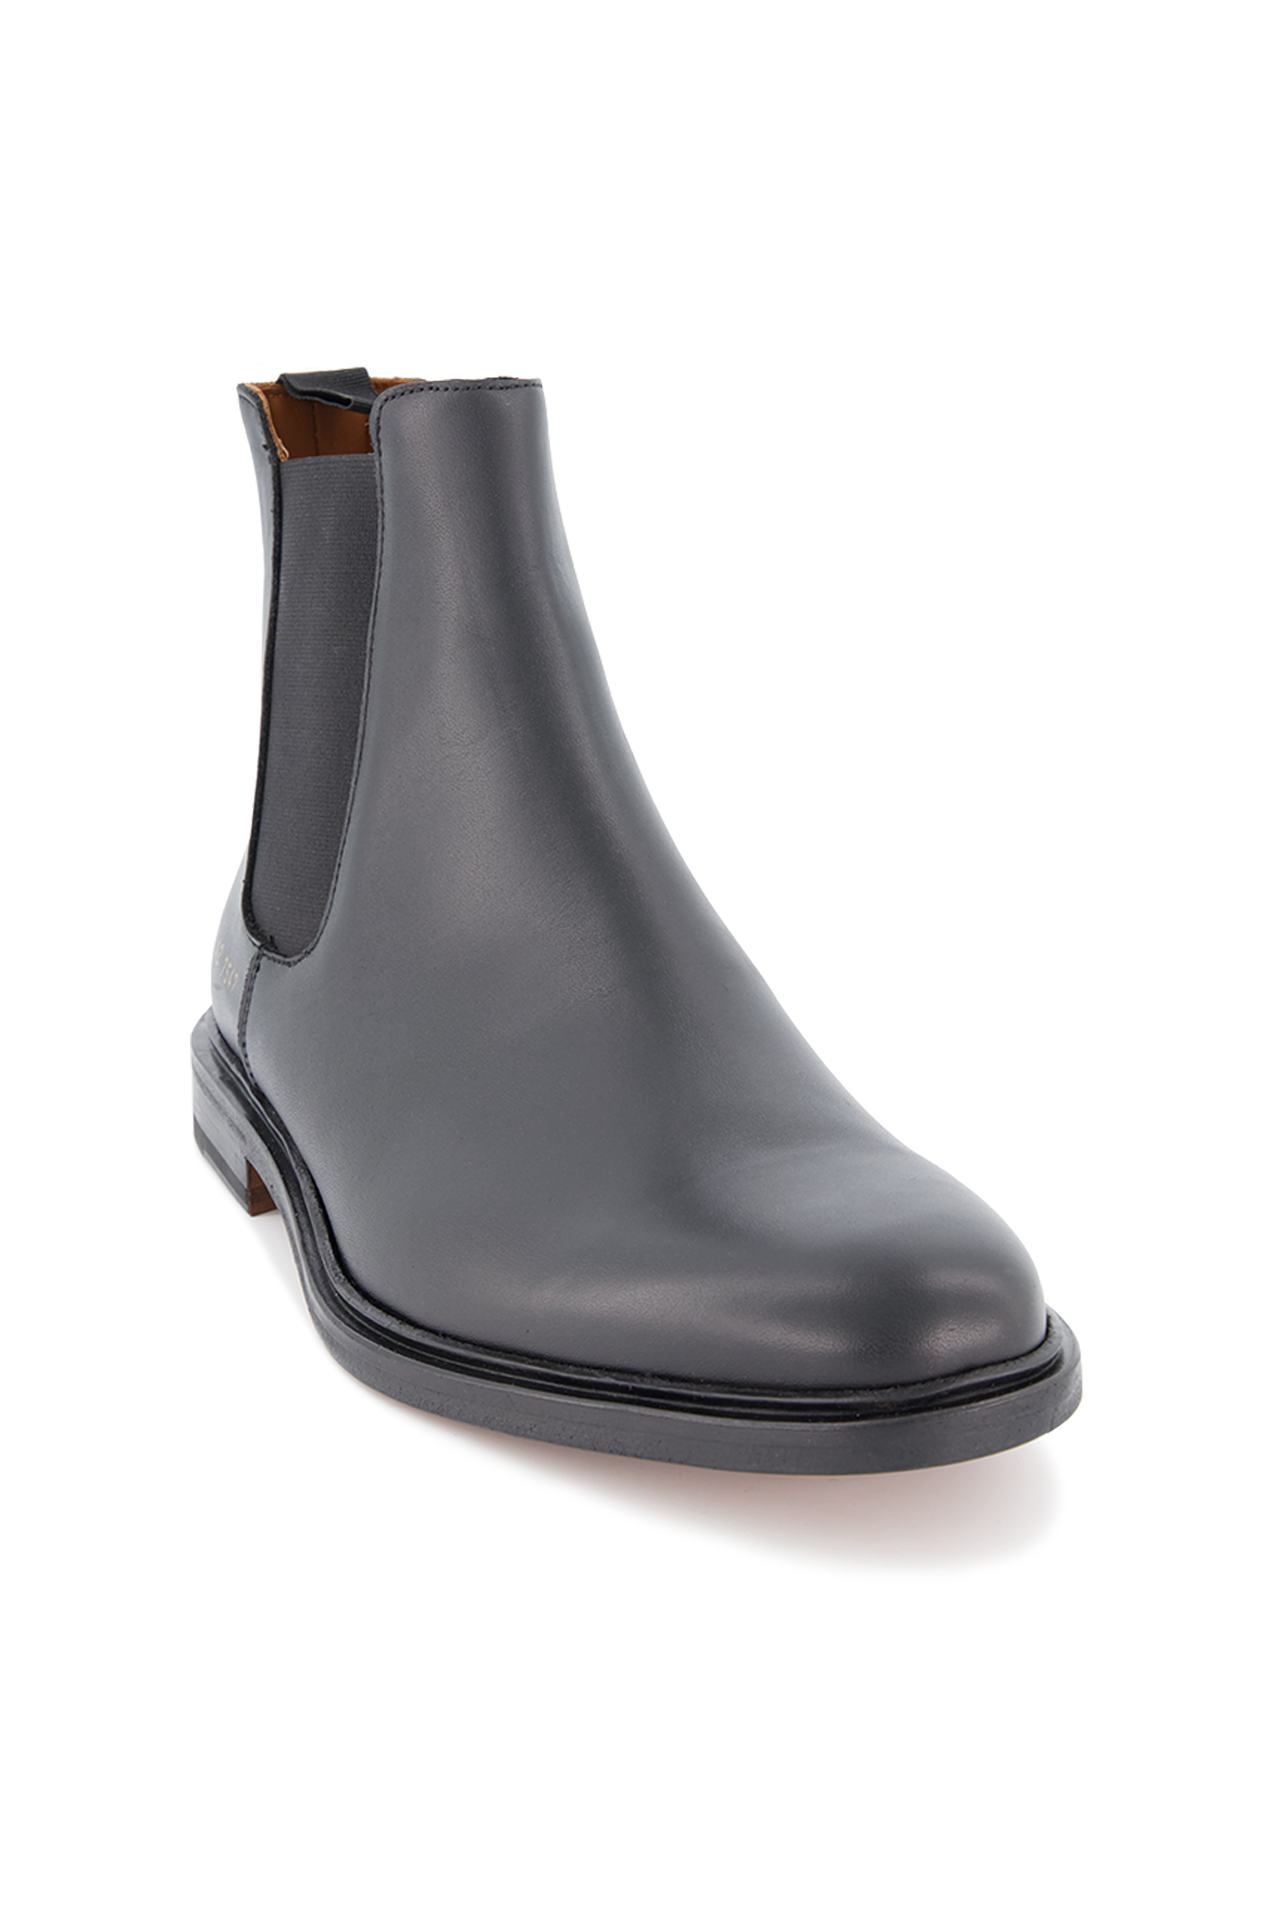 Front angle image of Common Projects Men's Chelsea Boot Leather Black